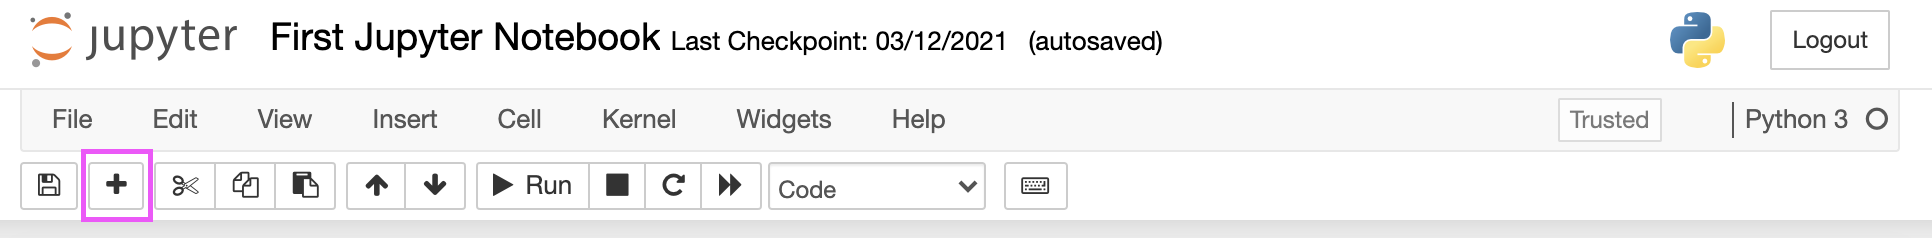 + button in the Jupyter Notebook menu